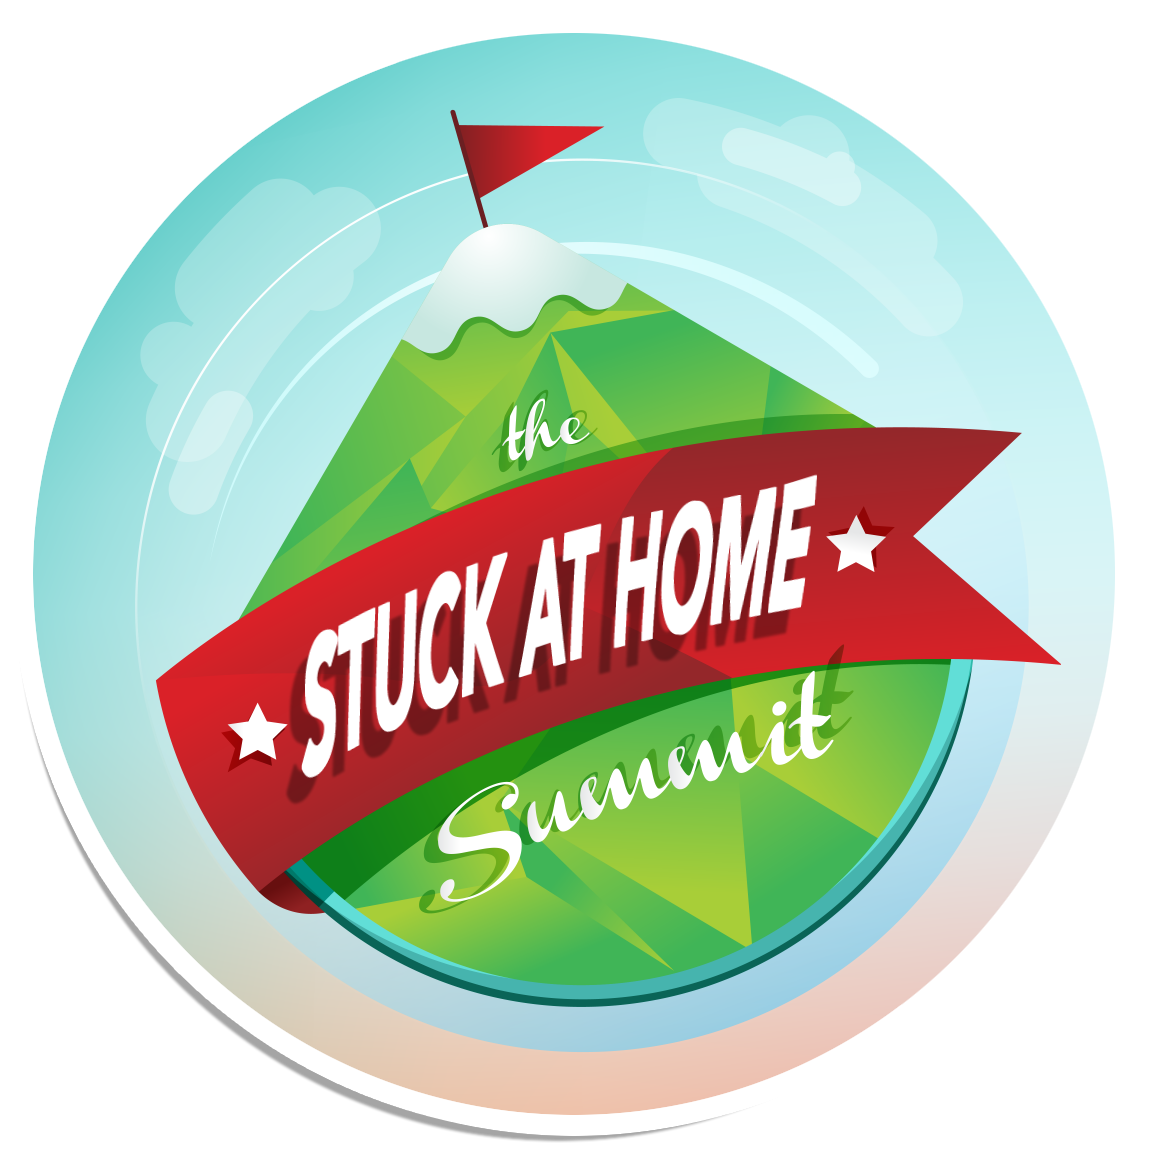 The Stuck At Home Online Summit